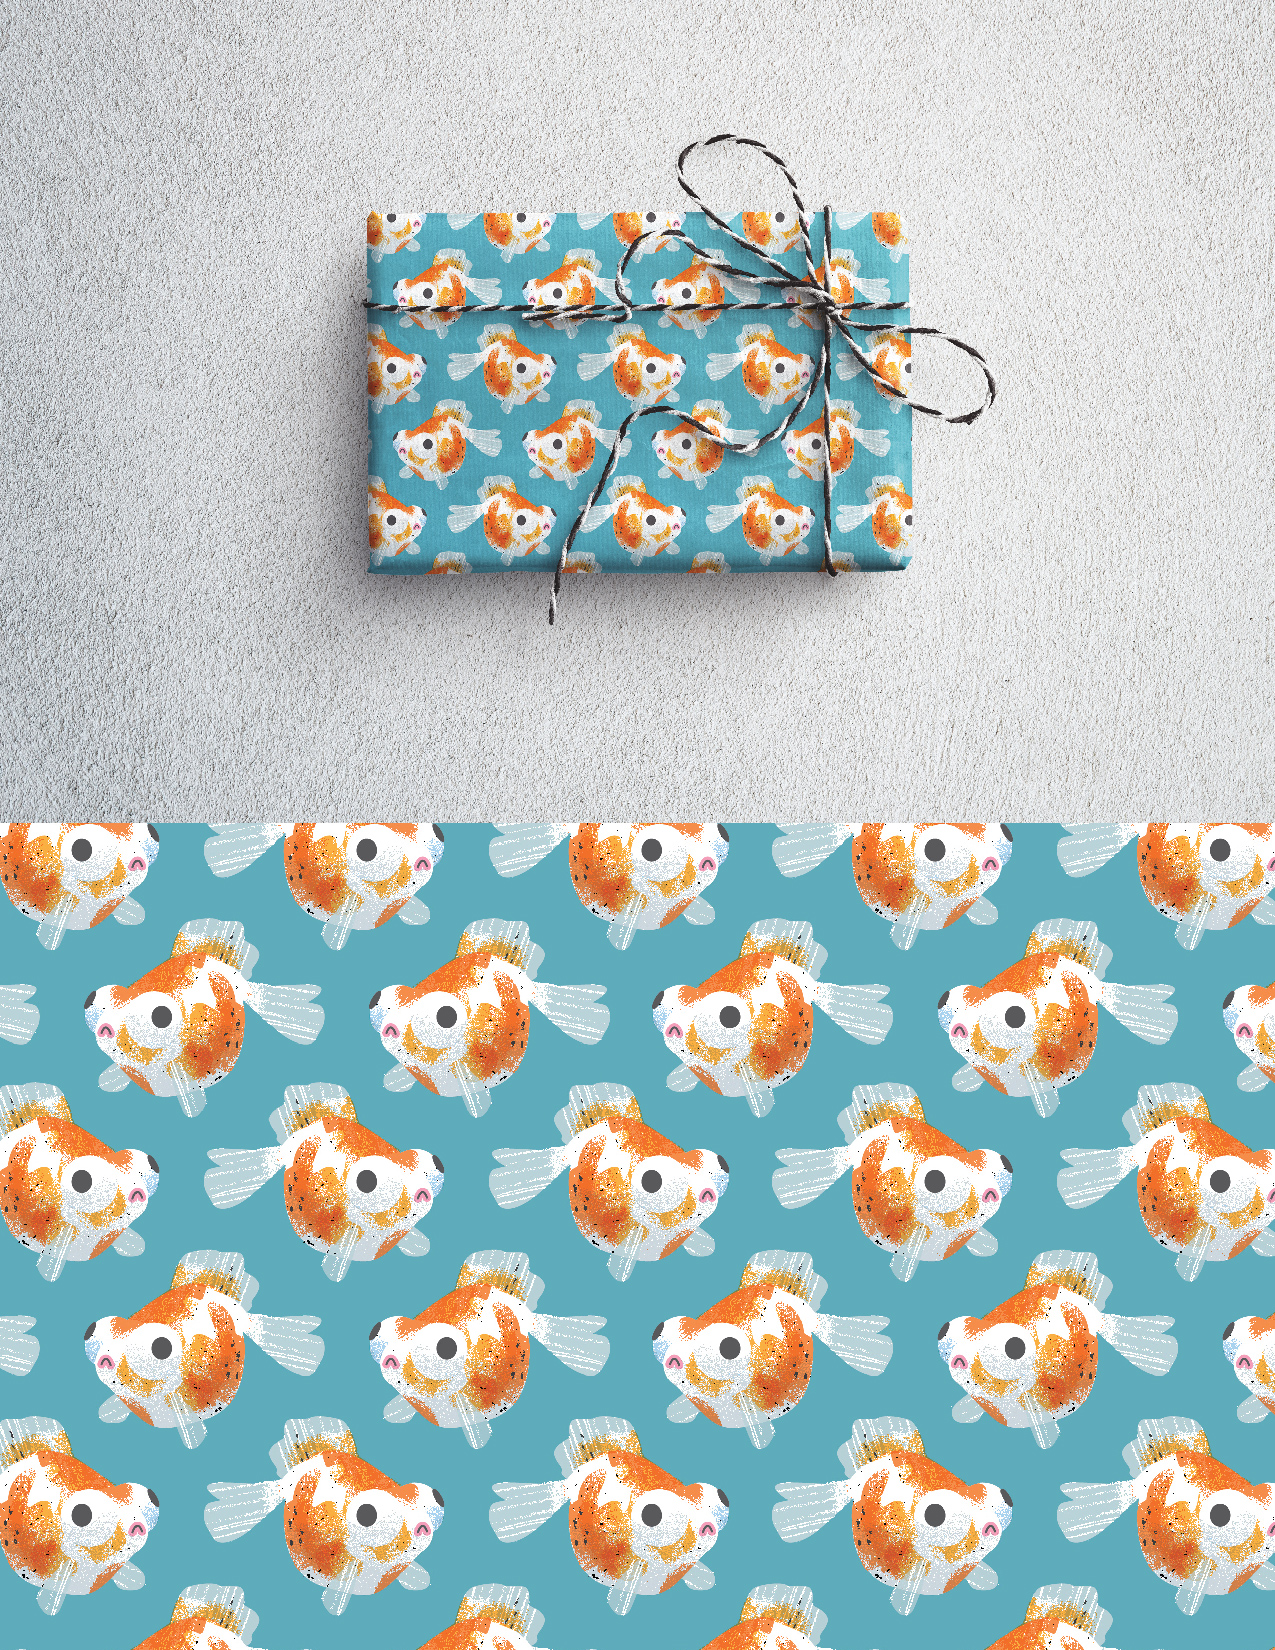 wrapping_paper_no_logo-01